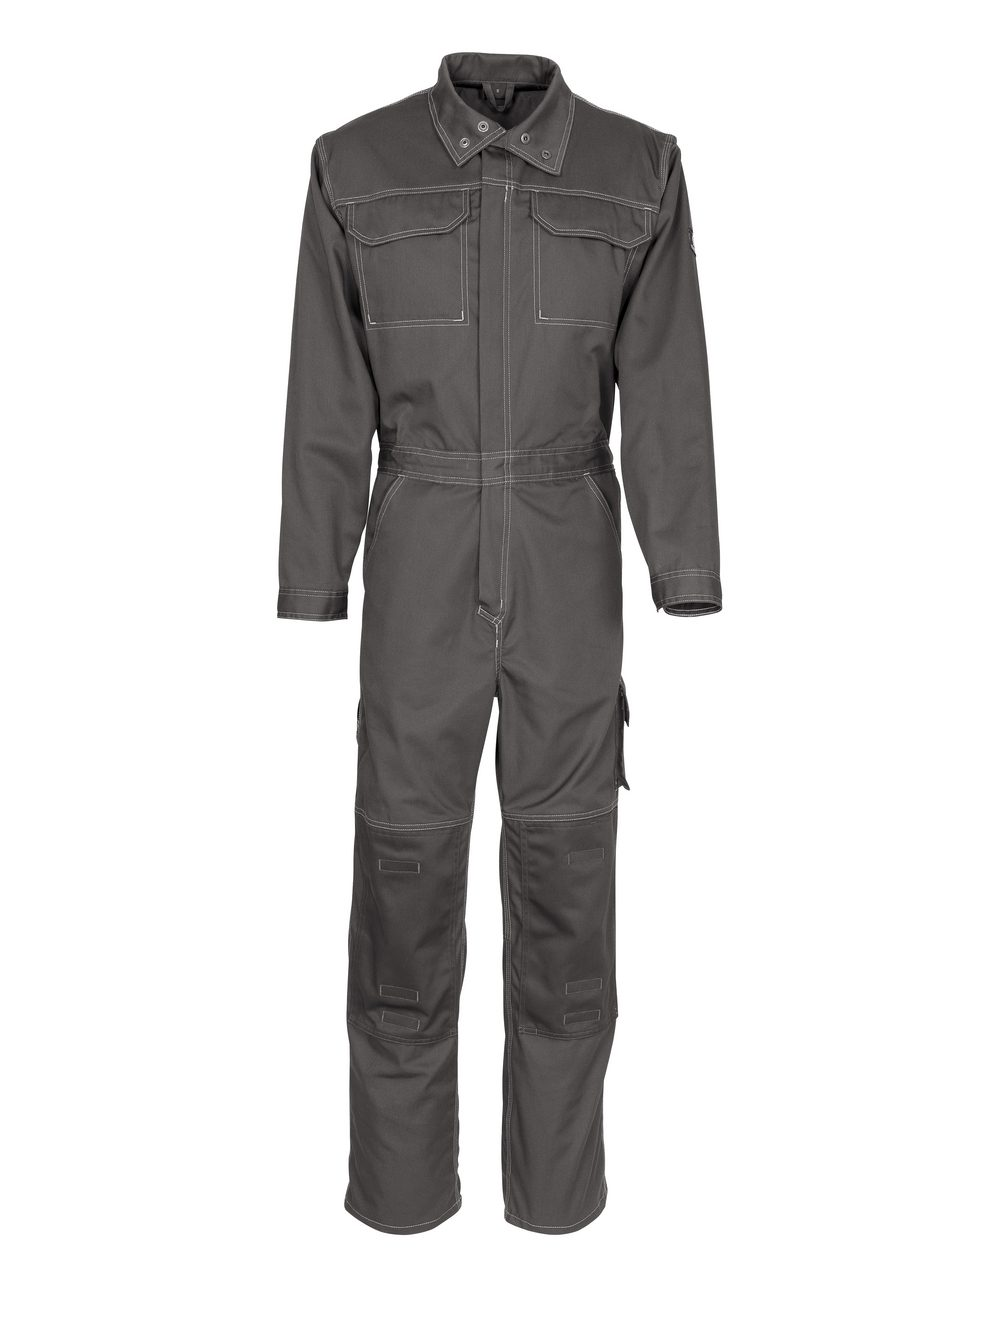 MASCOT AKRON COVERALLS DARK ANTHRACITE